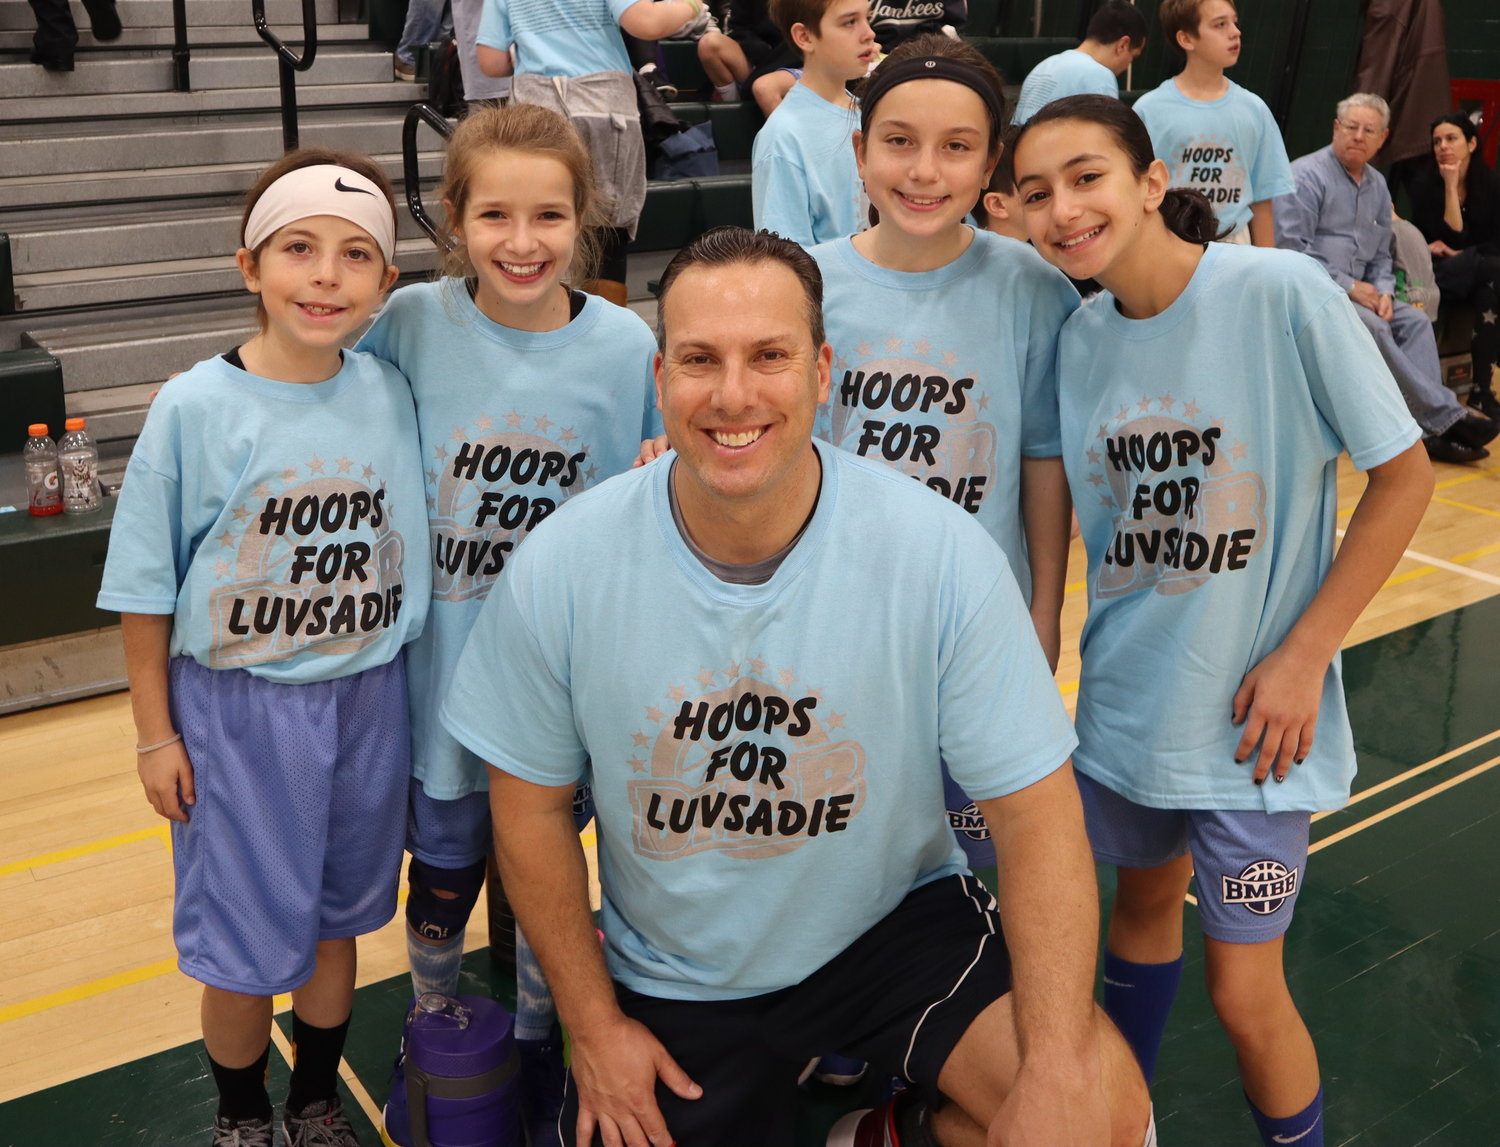 Bellmore-Merrick Basketball League organizer Adam Wohlleben, who coordinated Hoops for Sadie, with his daughter's team, the Fearsome Foursome.